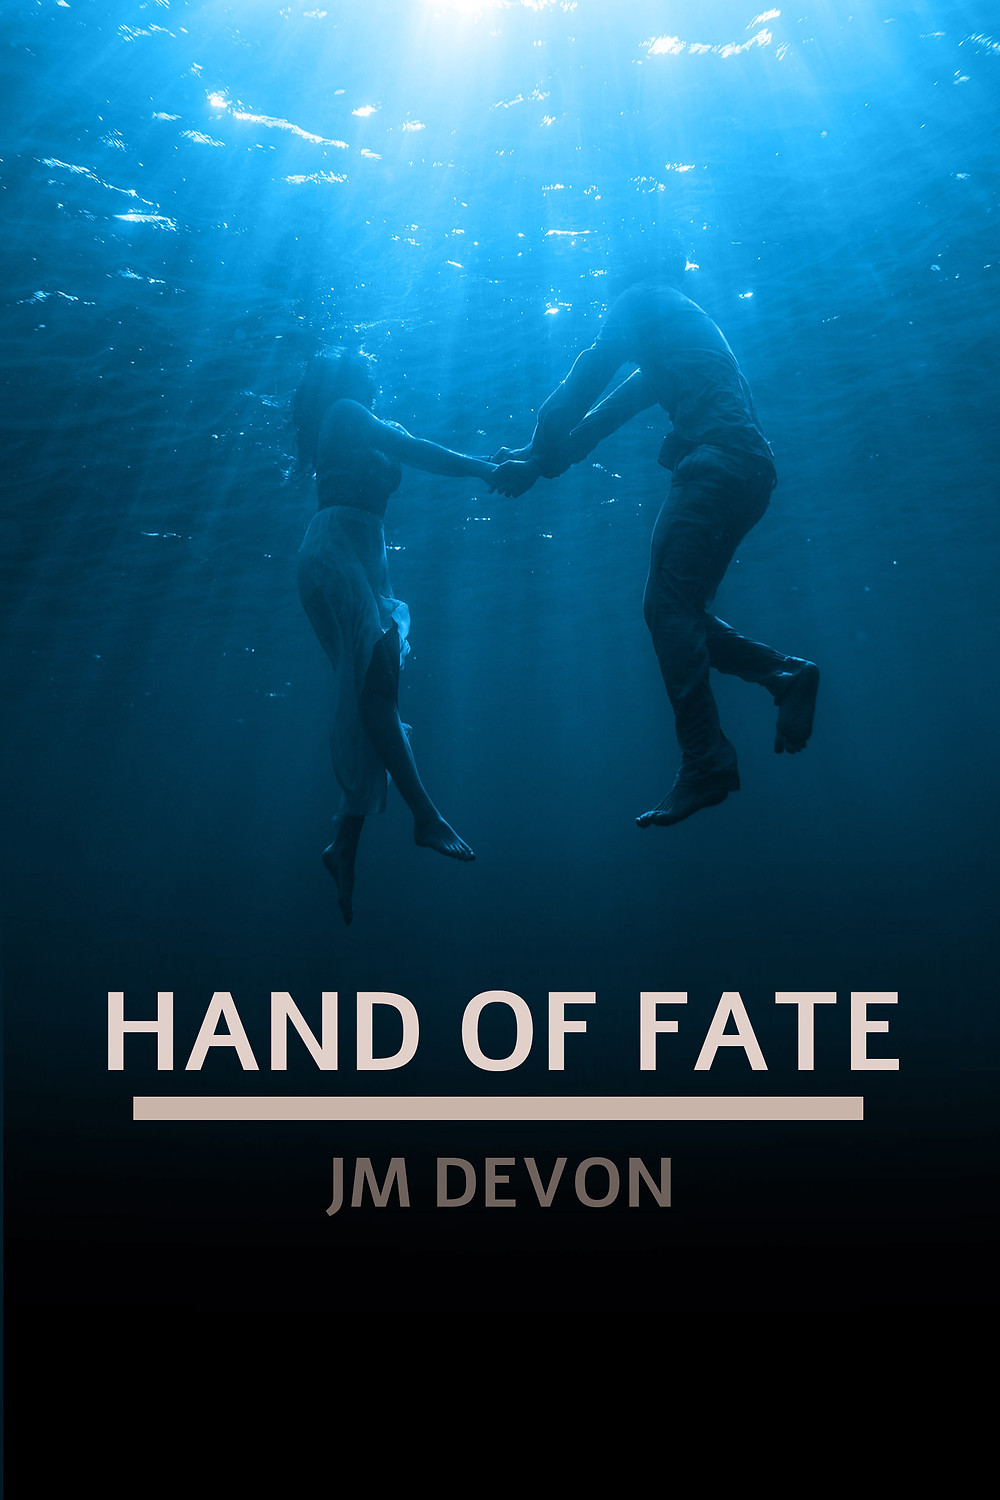 Hand Of Fate by JM Devon